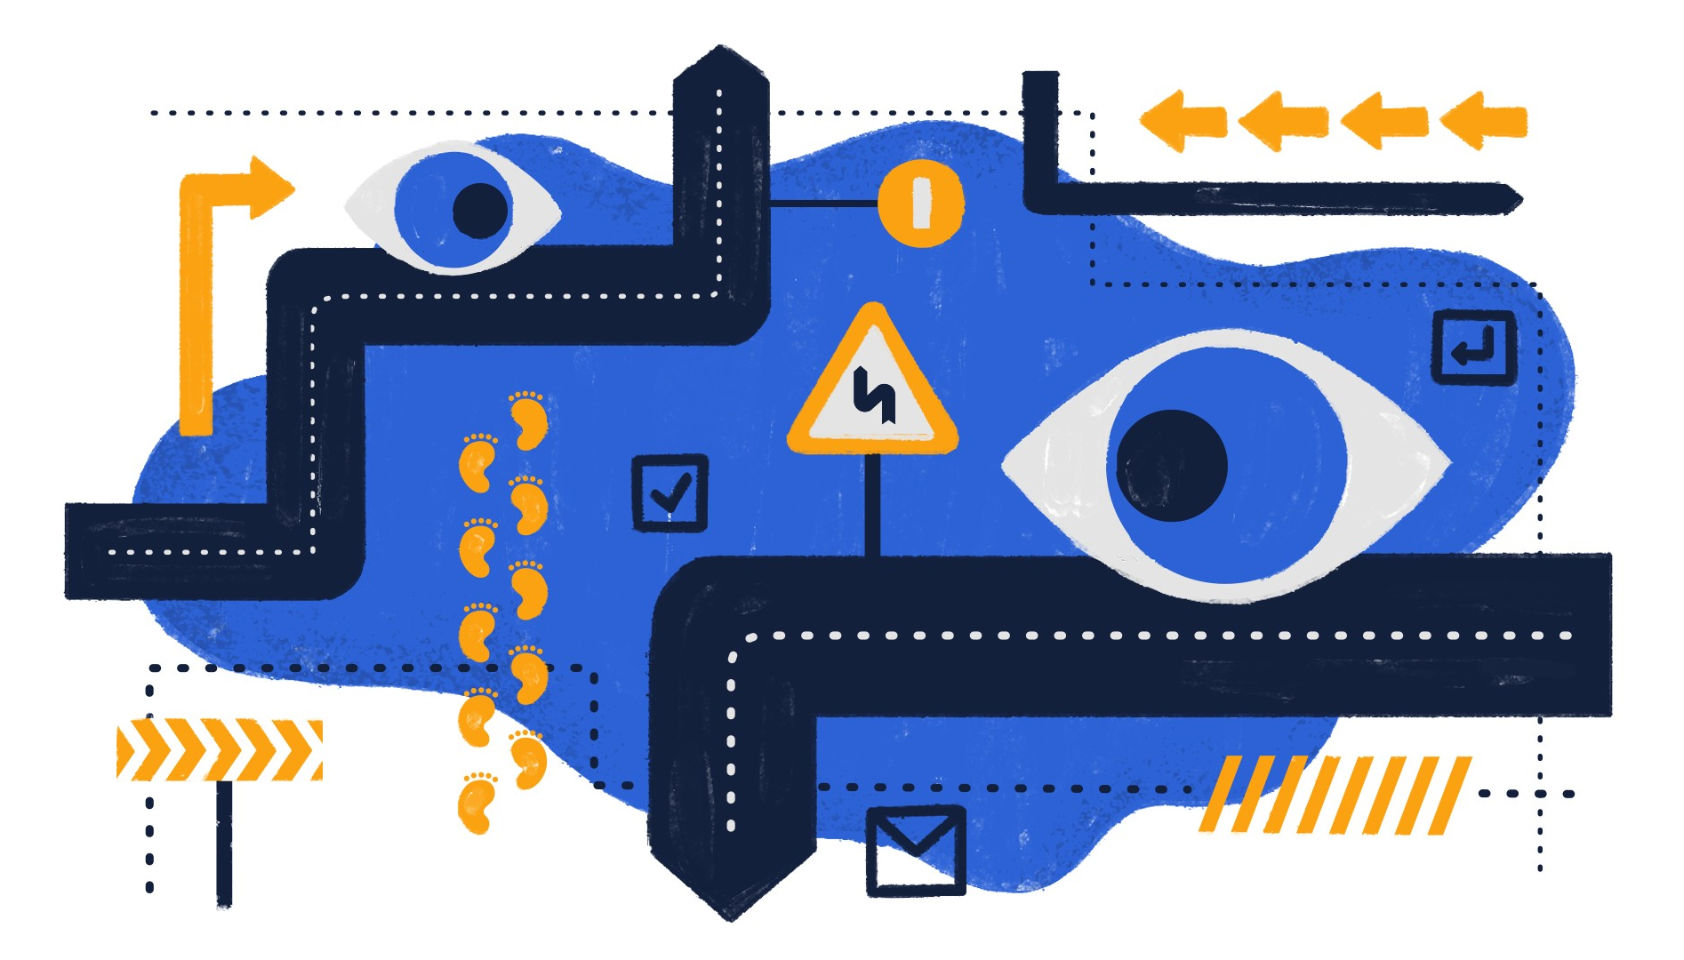 Popular design news of the week: March 18, 2019 - March 24, 2019